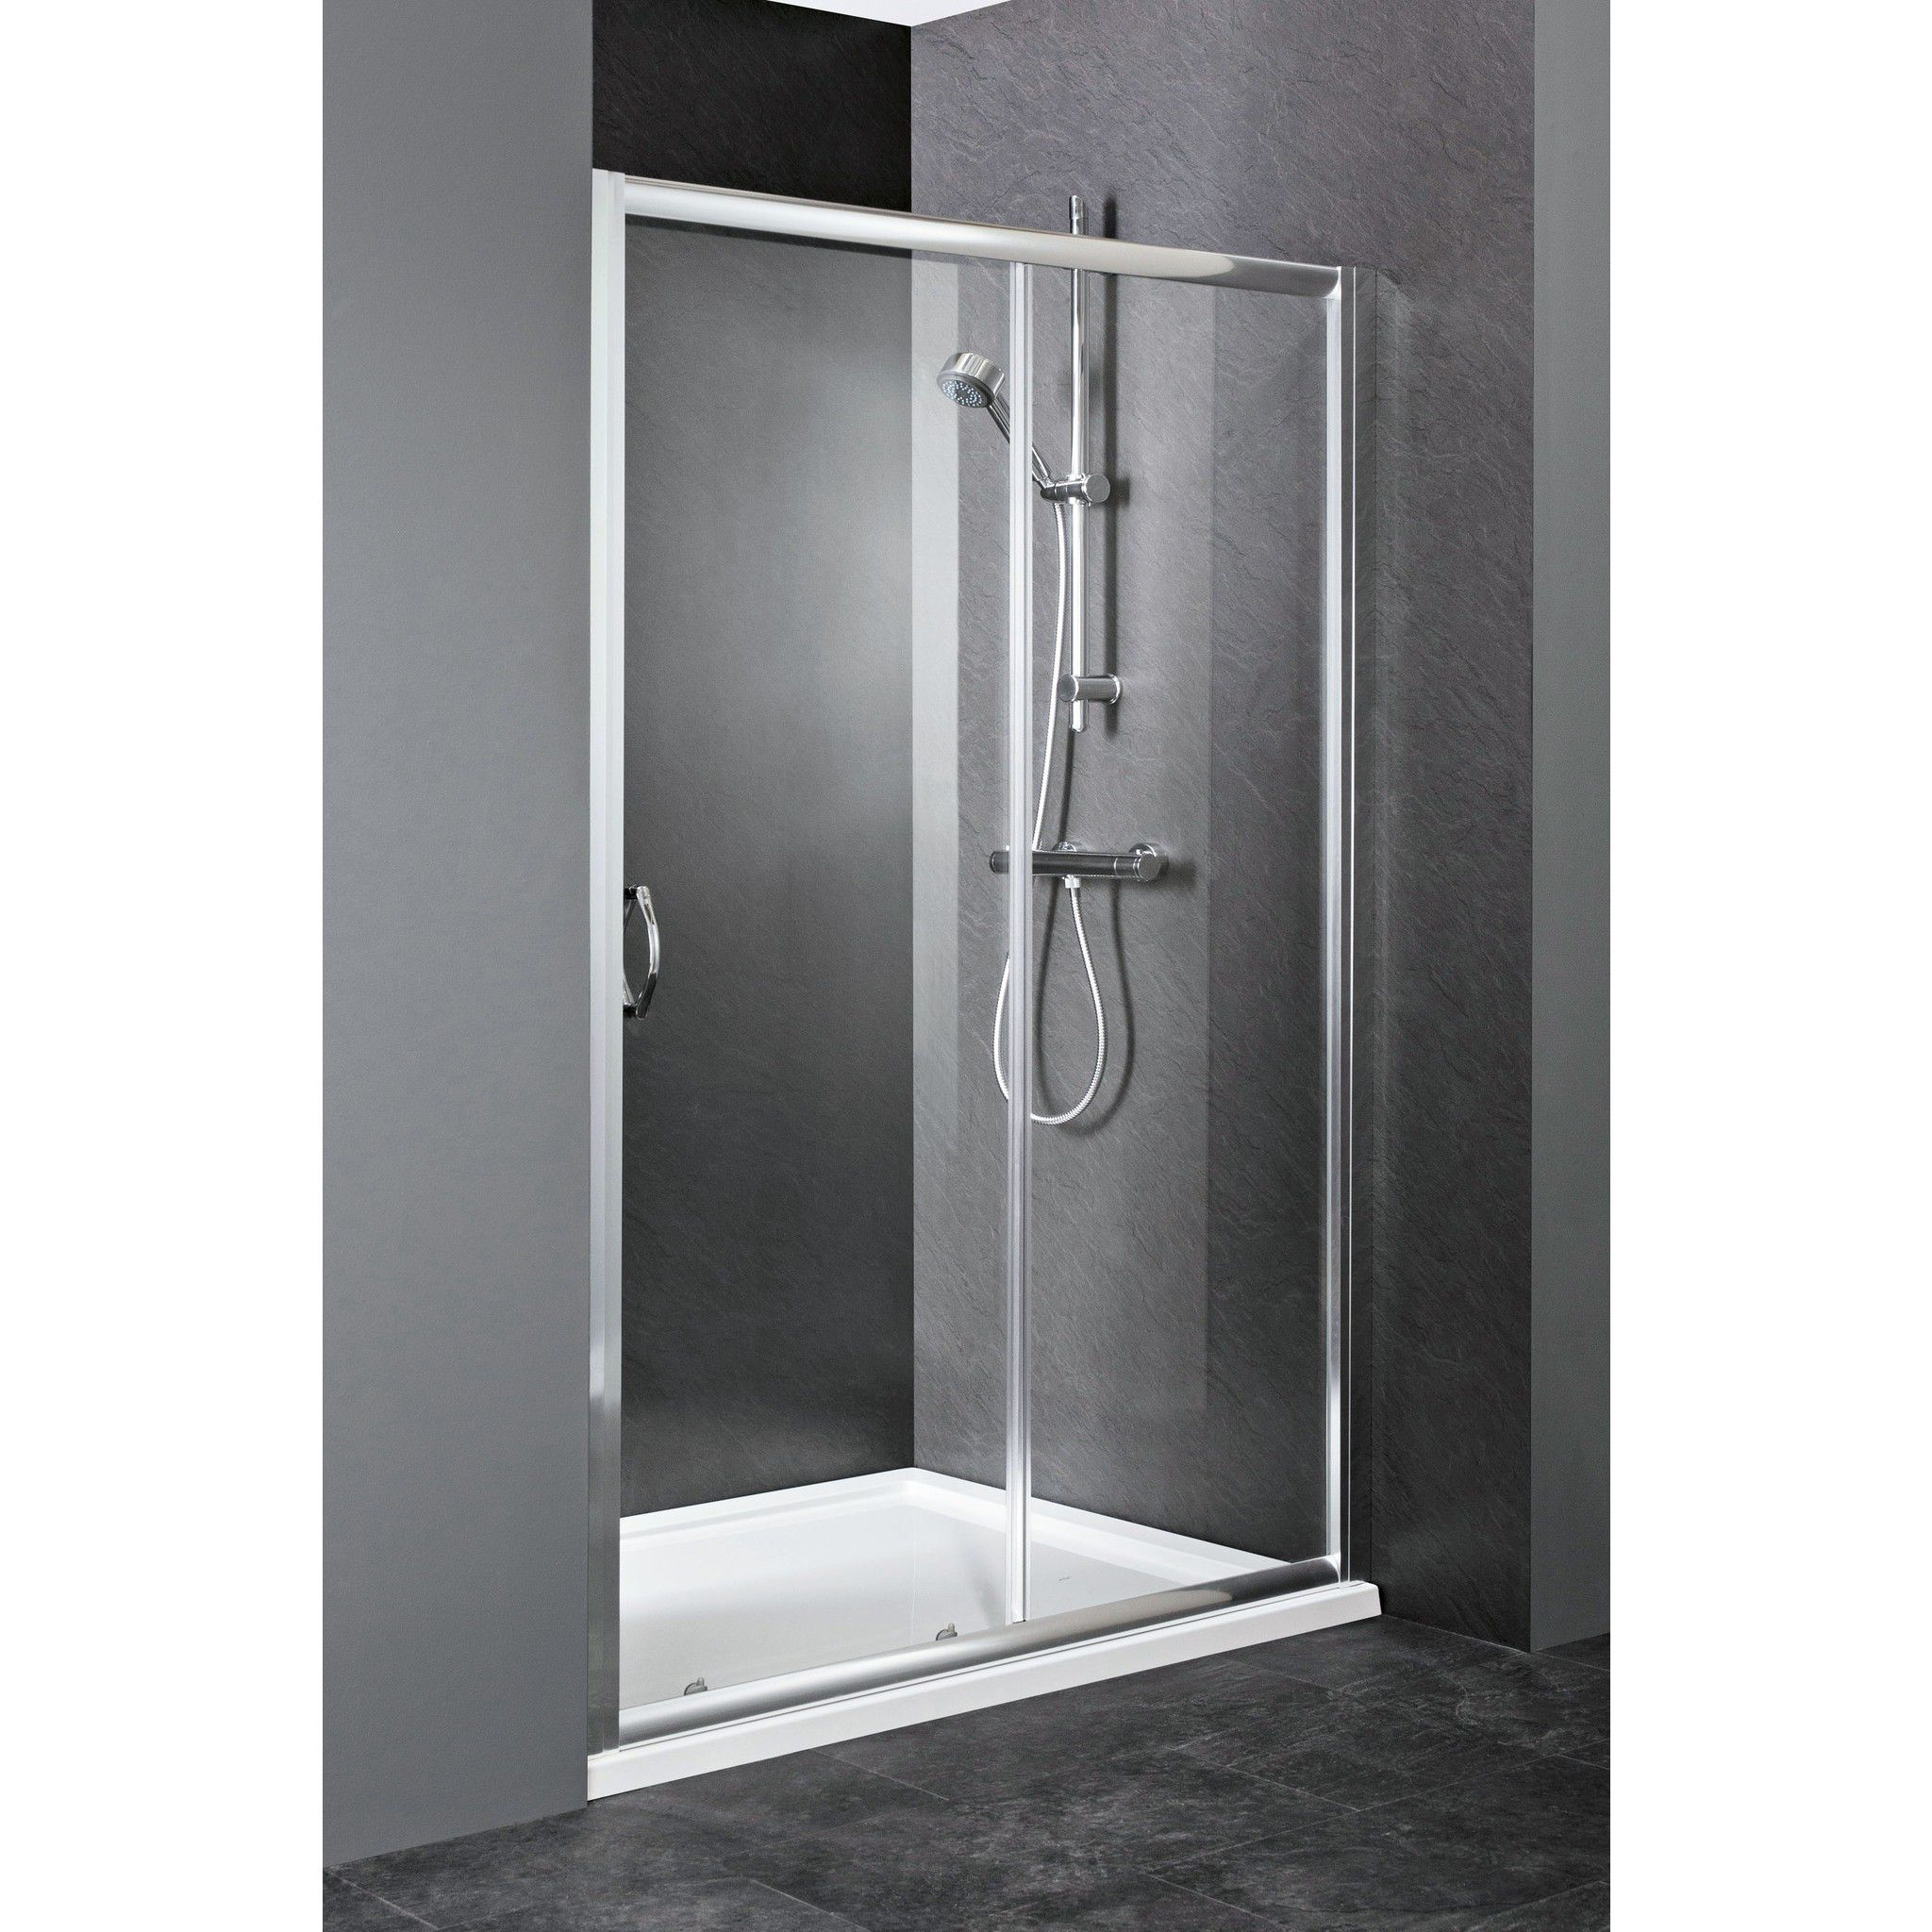 Cute Design Of Sliding Door Showering Area Of Visible Glass Material